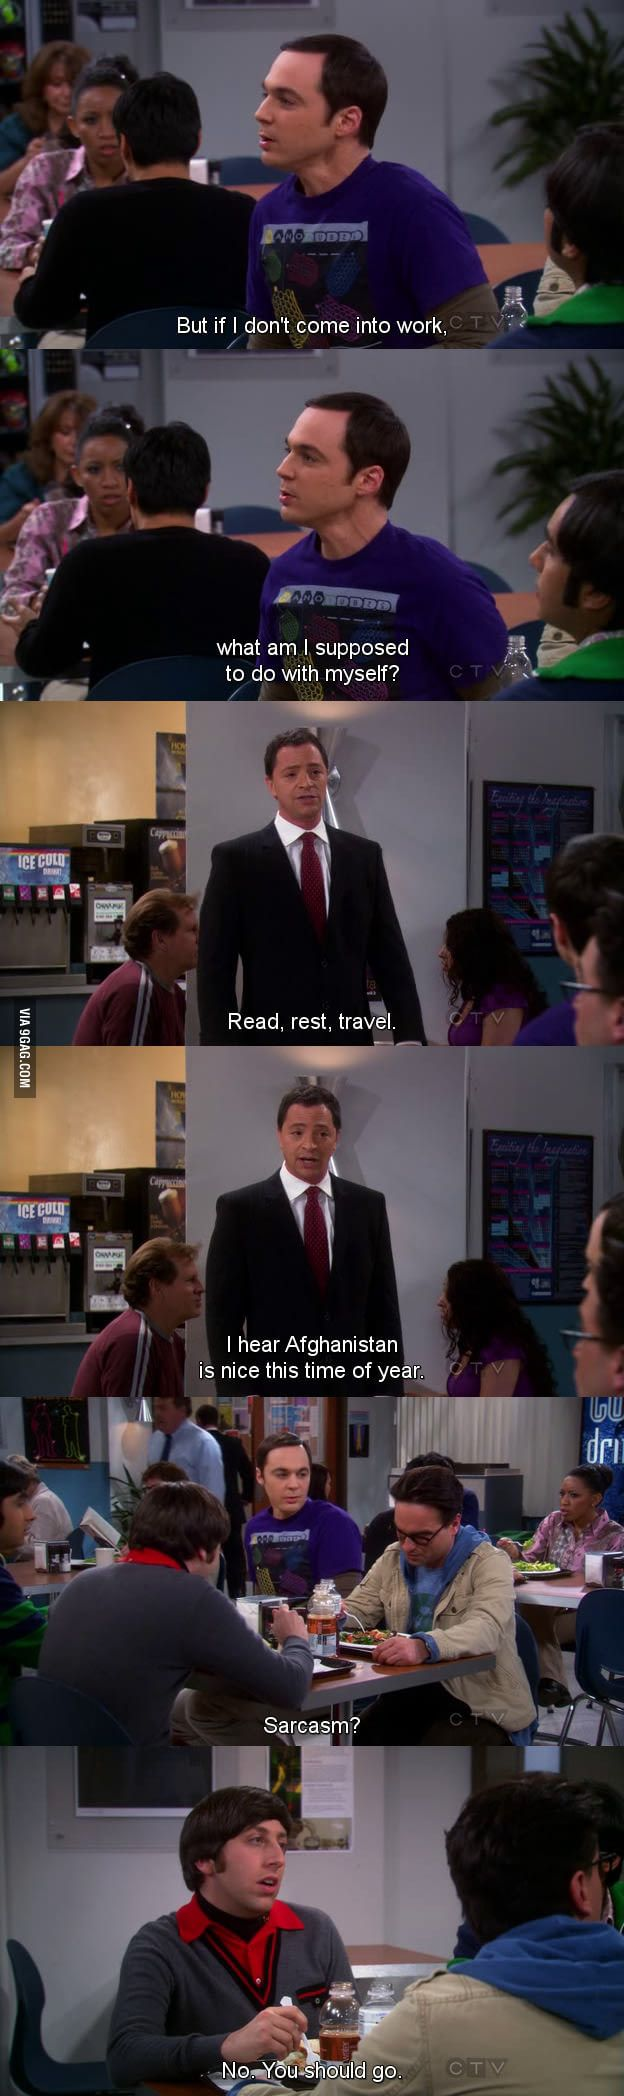 This is my favorite line from that show :D